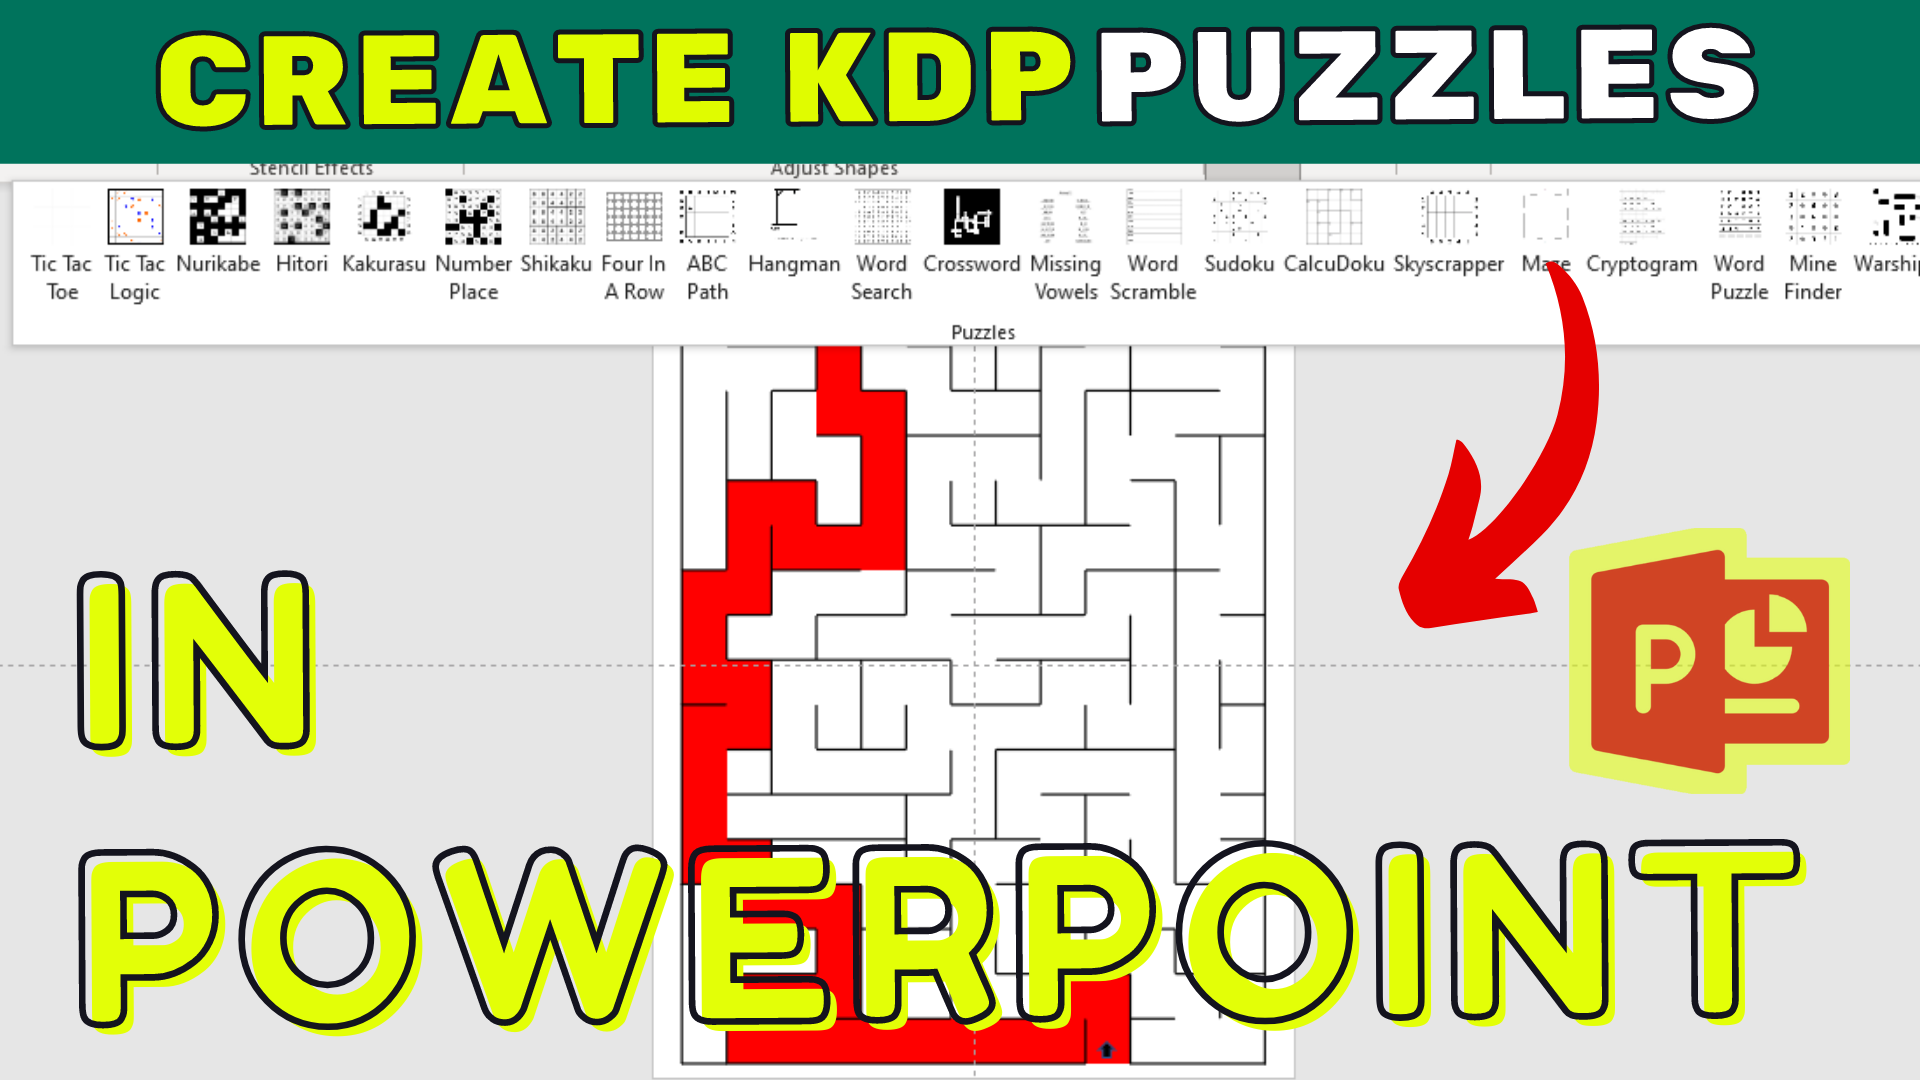 Puzzle Generator PowerPoint: Quickly Create Puzzles for KDP Low Content Books